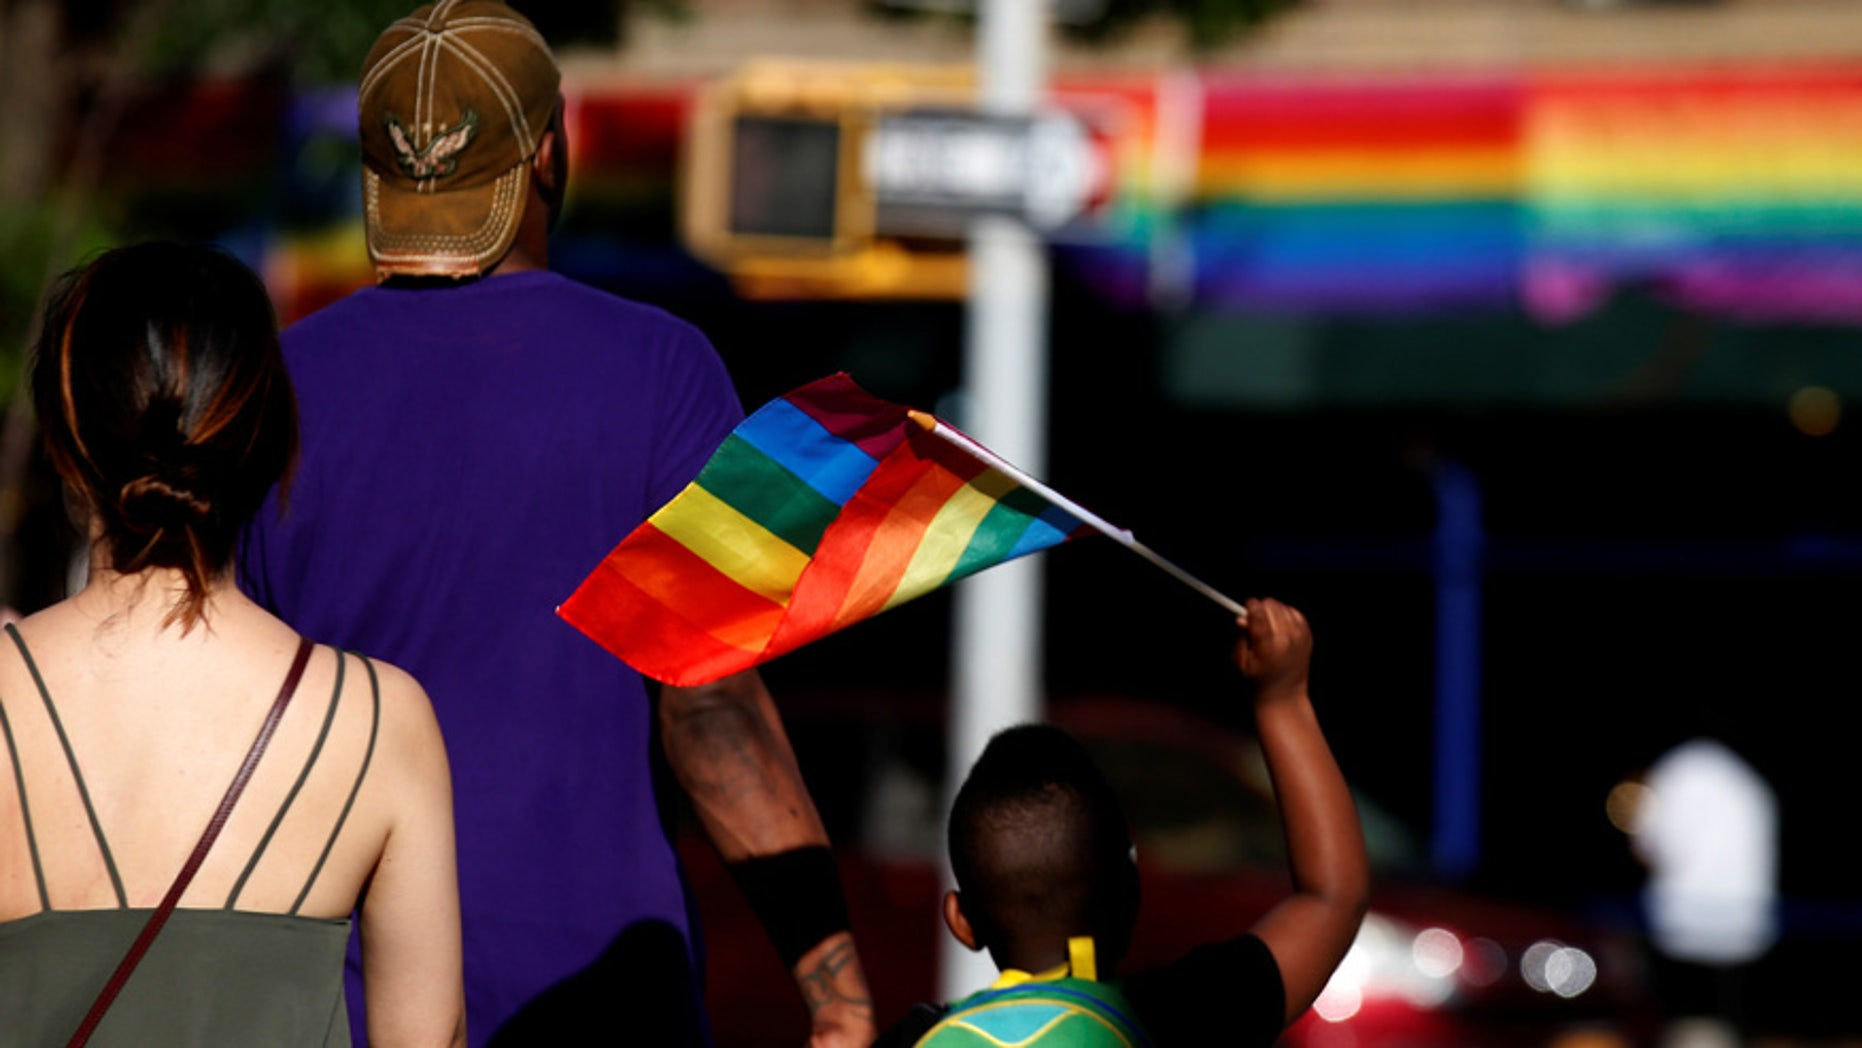 A boy carries a rainbow flag near The Stonewall Inn, on the eve of the LGBT Pride March, in the Greenwich Village section of New York City, U.S. June 24, 2017. REUTERS/Brendan McDermid - RTS18ID1